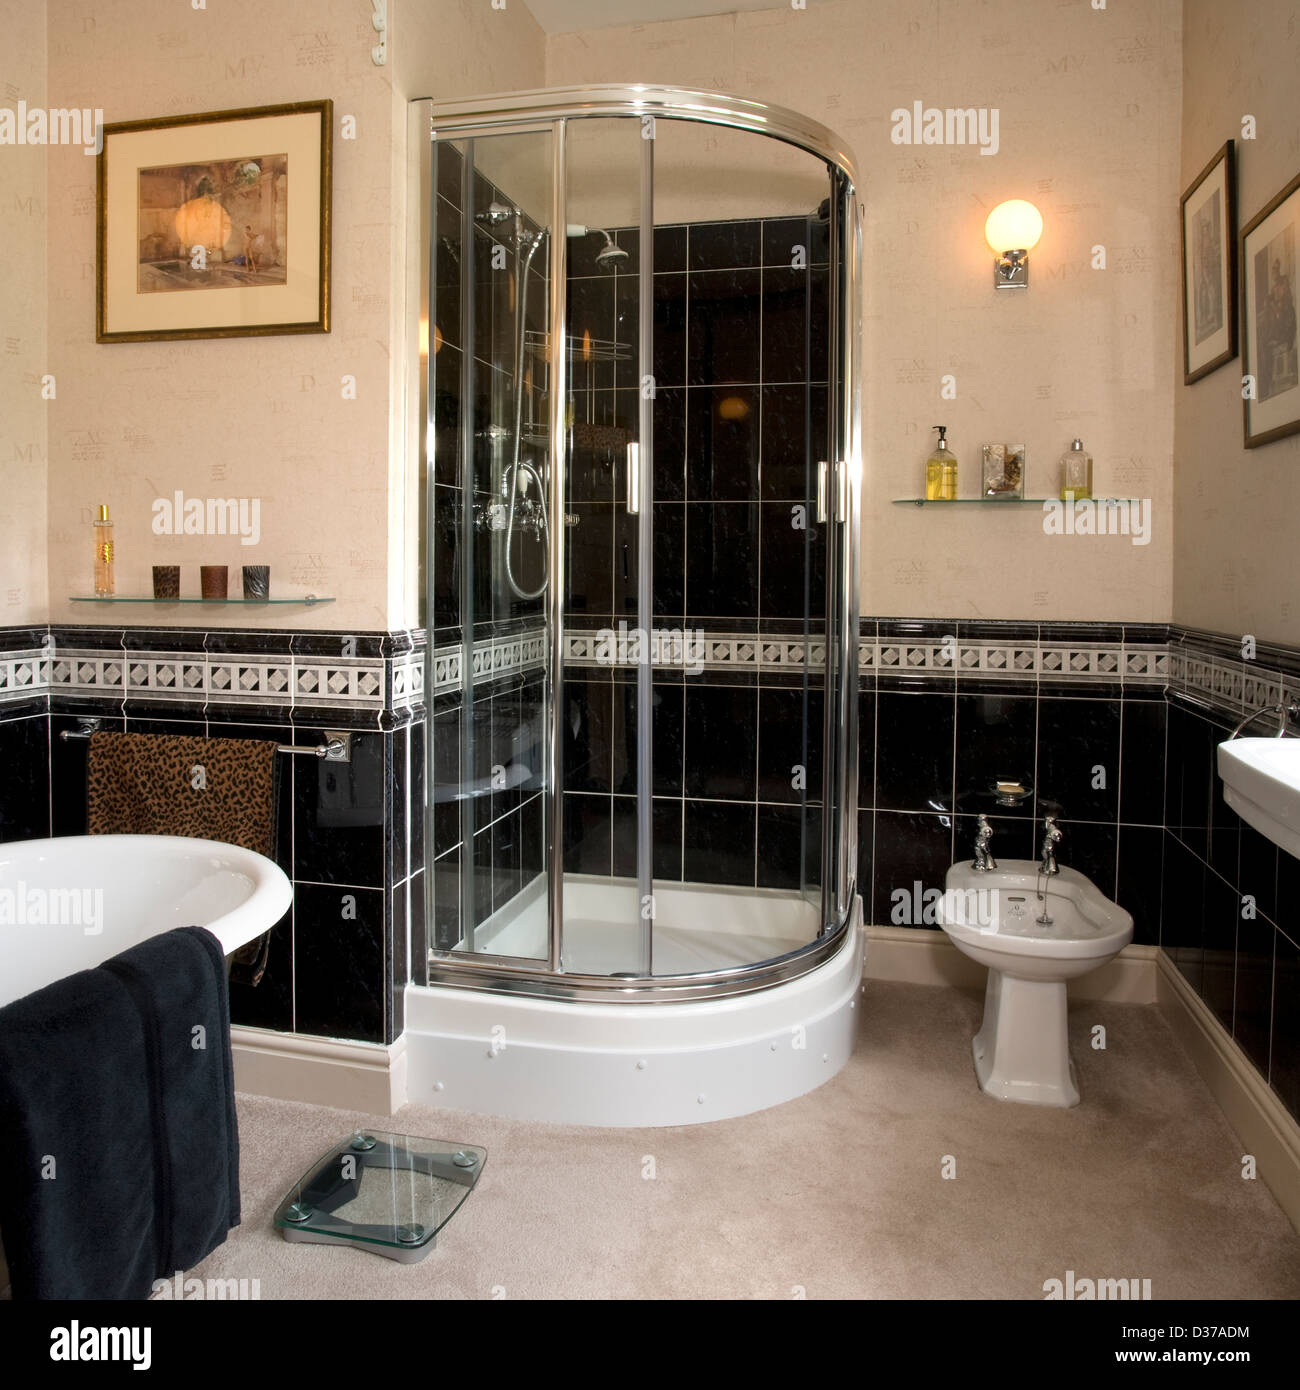 A shiny chrome and black tiled bathroom with shower Stock Photo ...